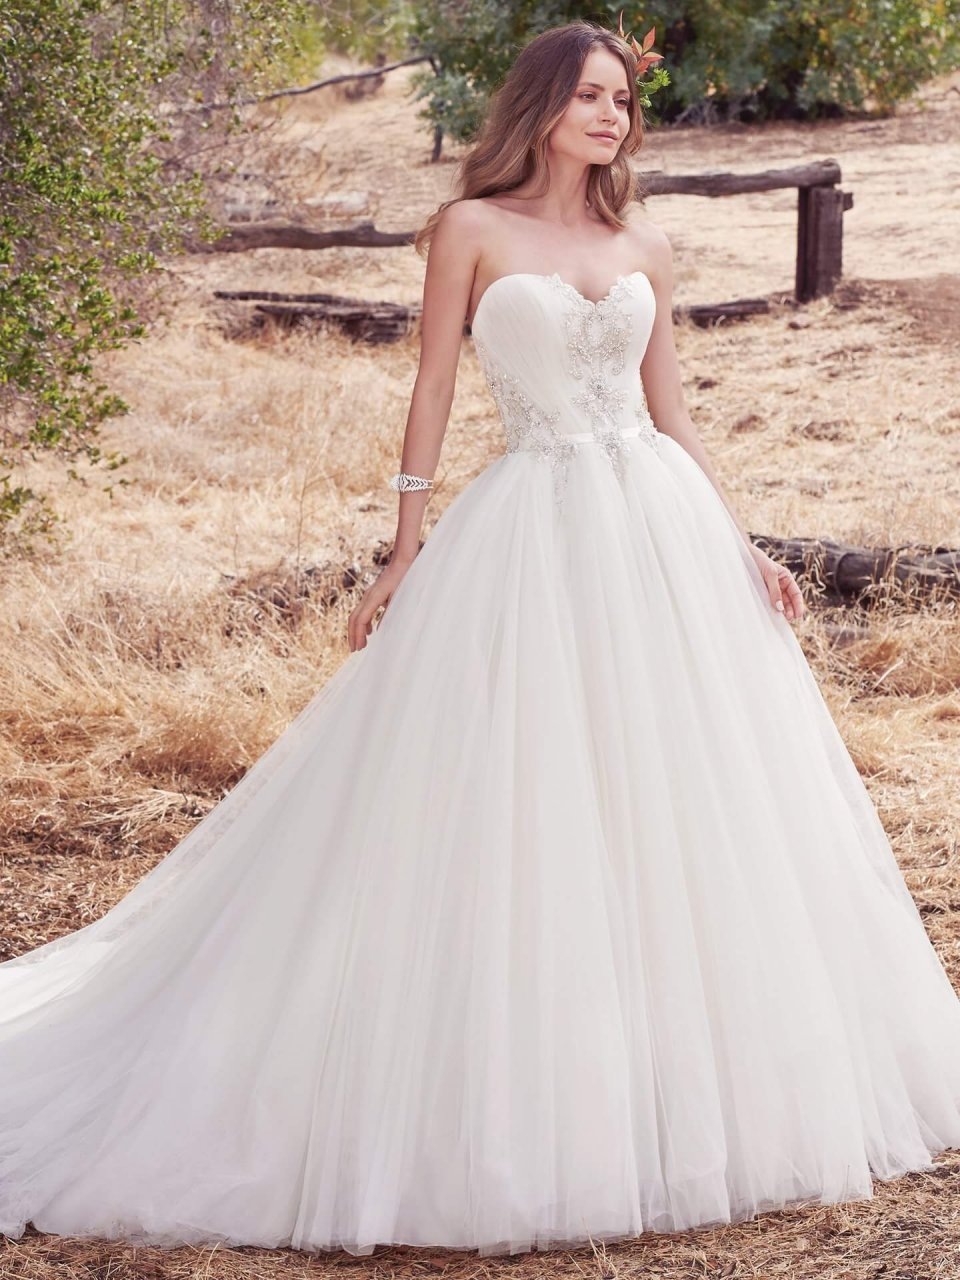 Maggie-Sottero-Wedding-Dress-Priya-7MW944-Alt1